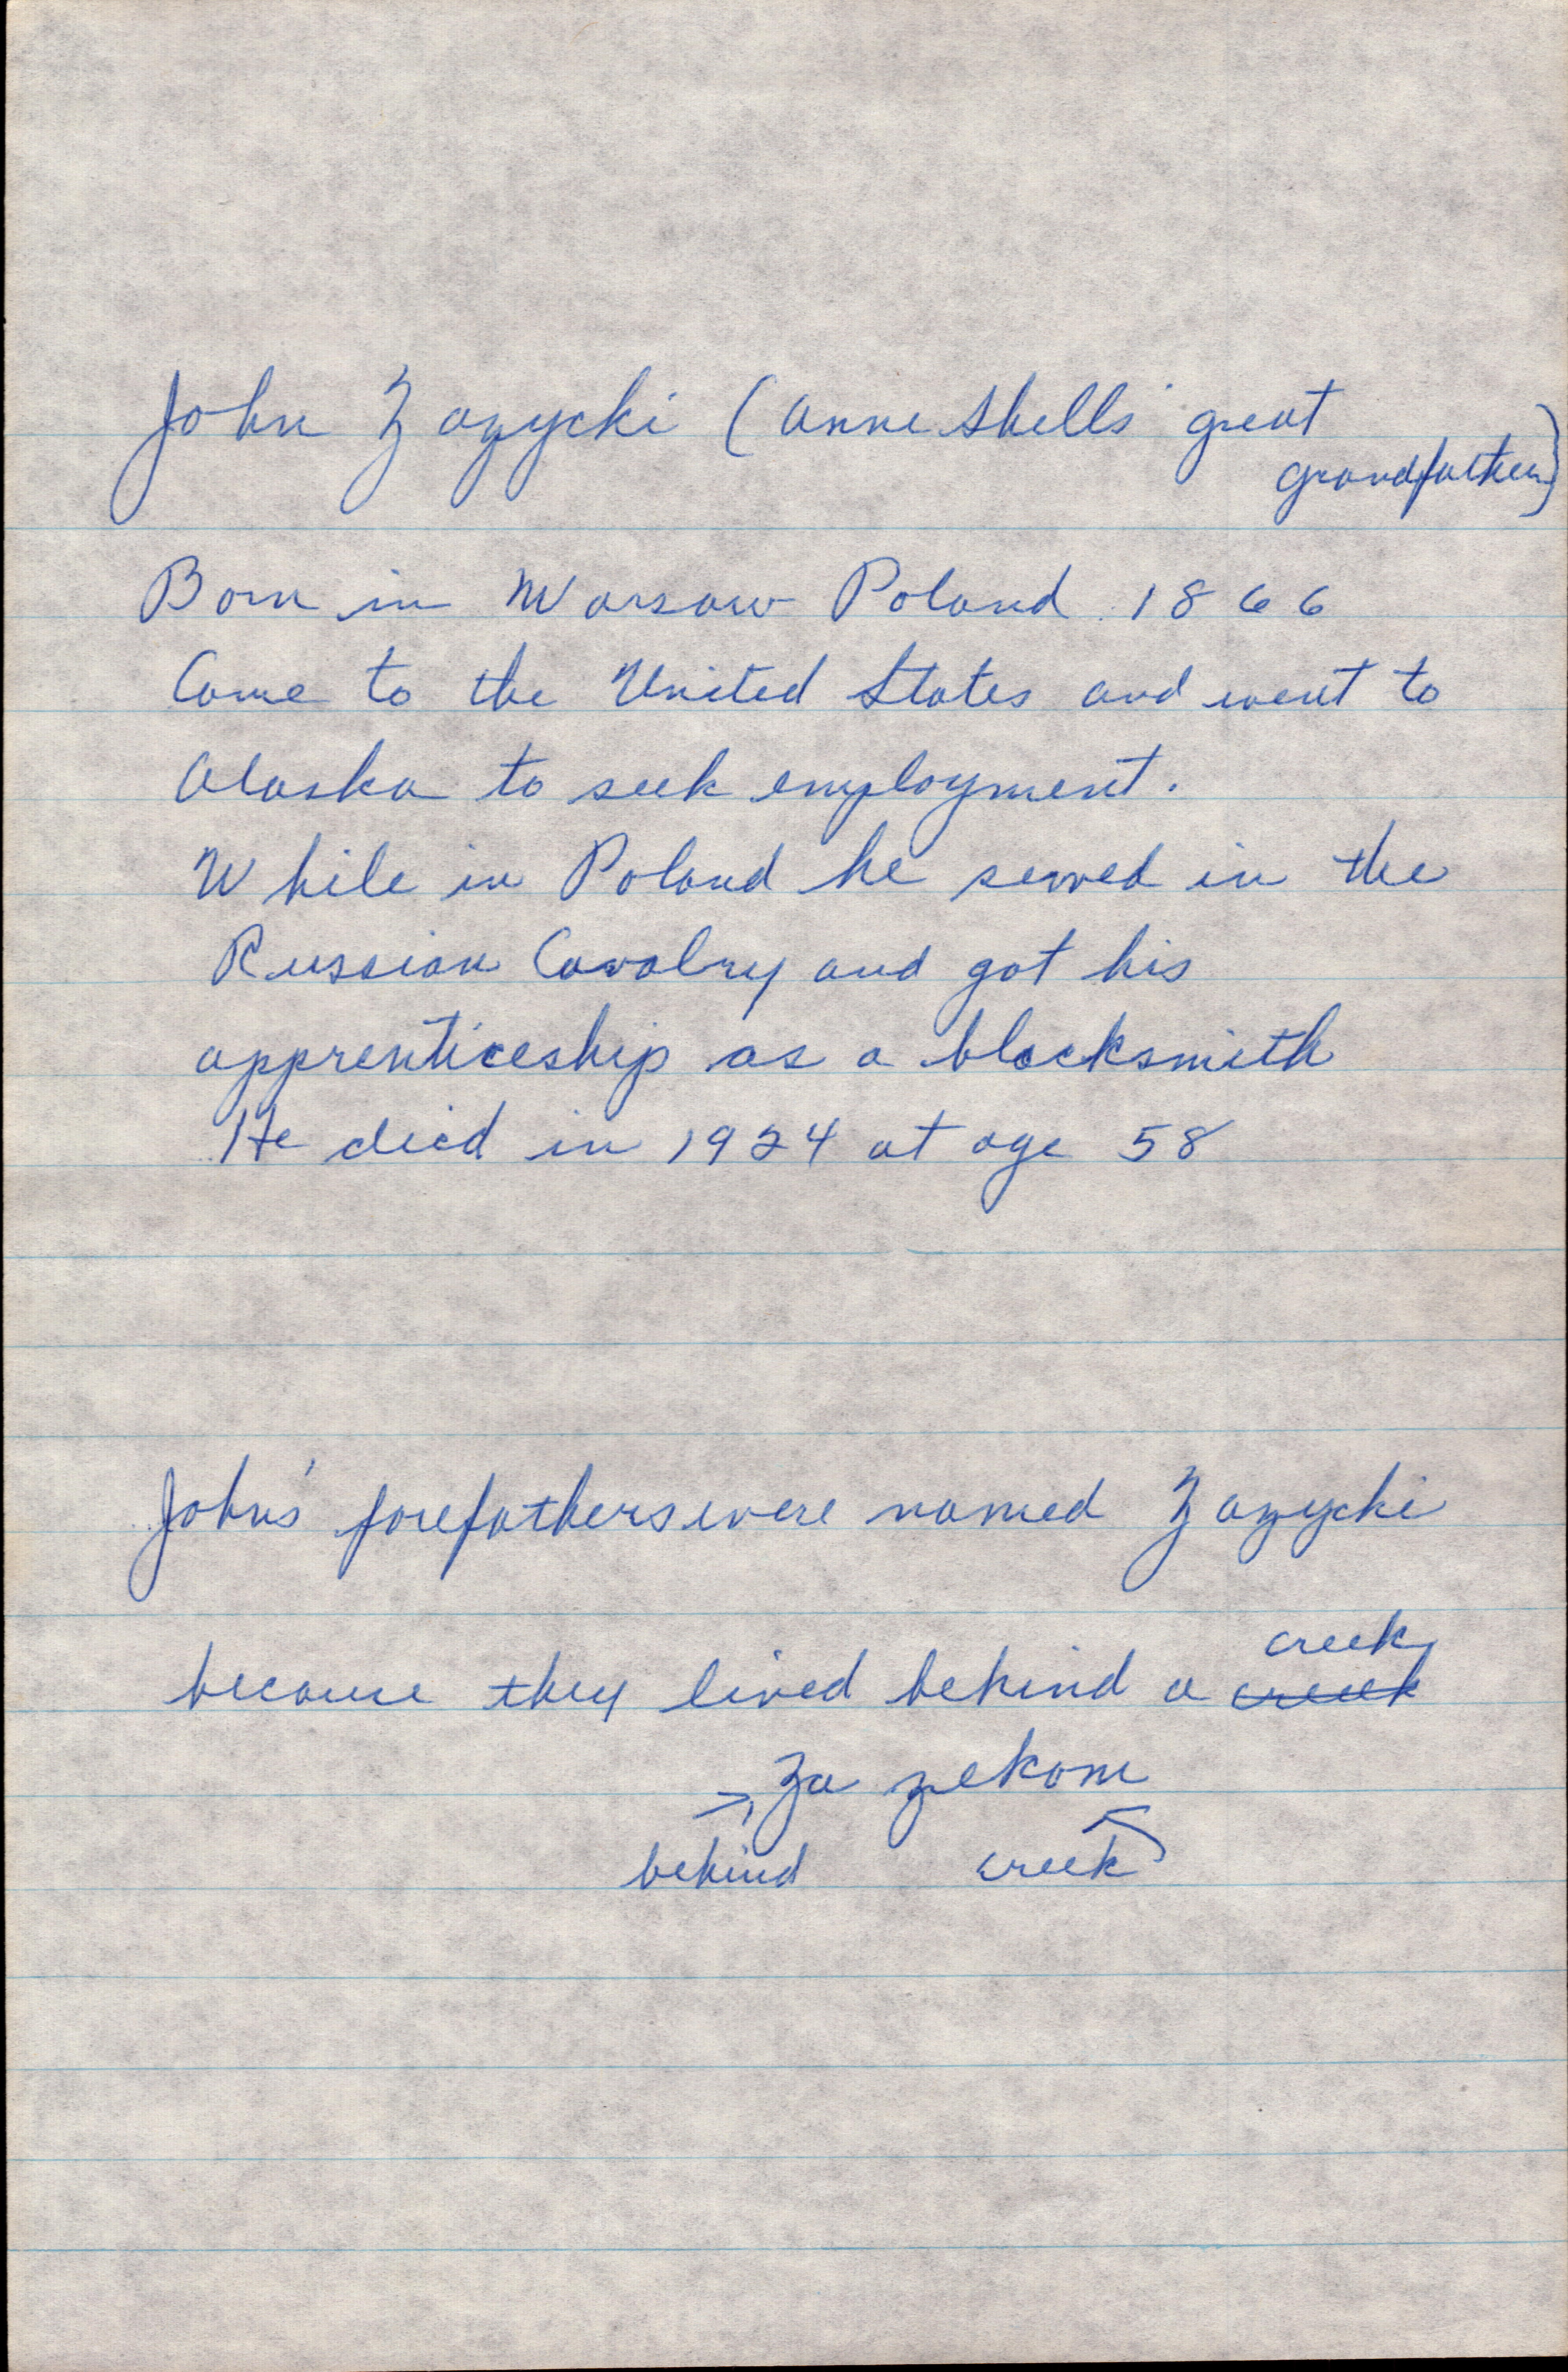 Letter from Grandma Helen 1977 page 6